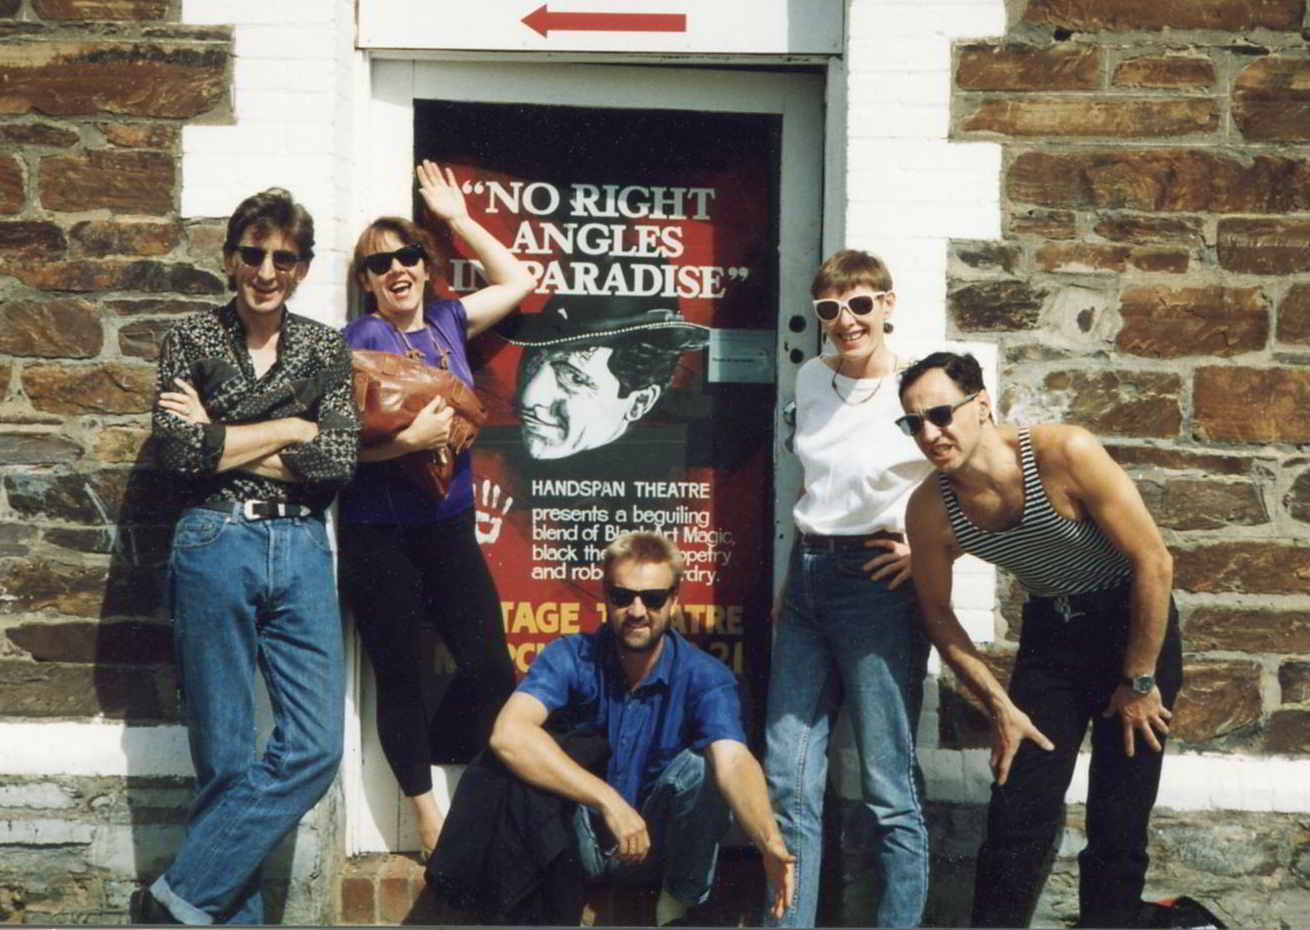 5 people with sunglasses around show poster in doorway of stone wall